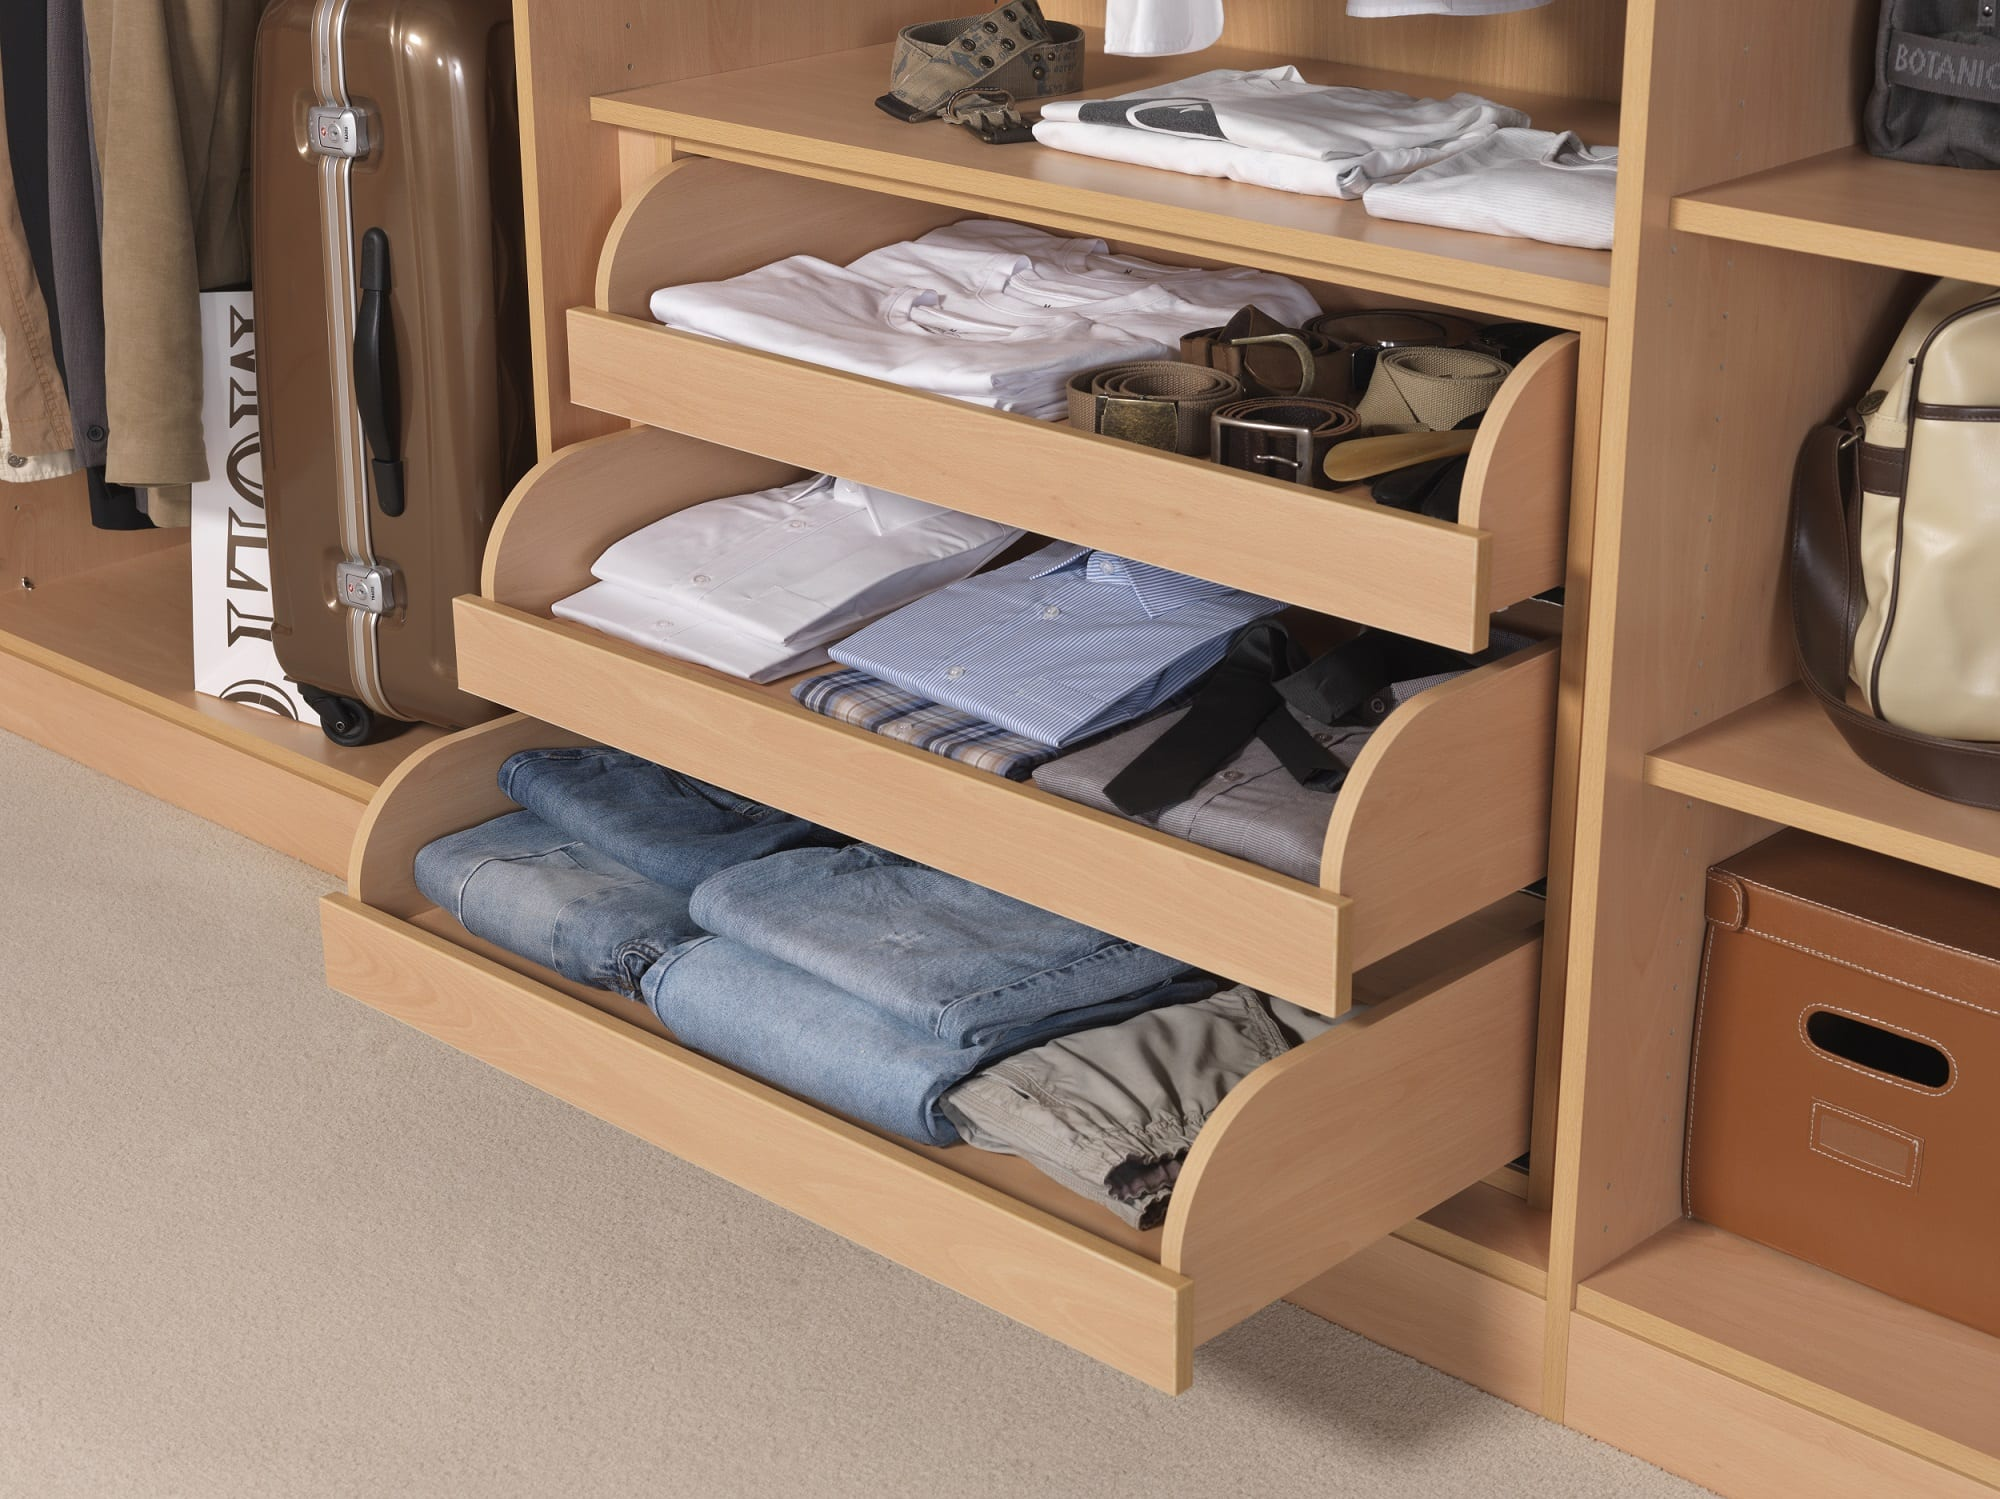 5 Storage Solutions Every Home Should Have Hartleys